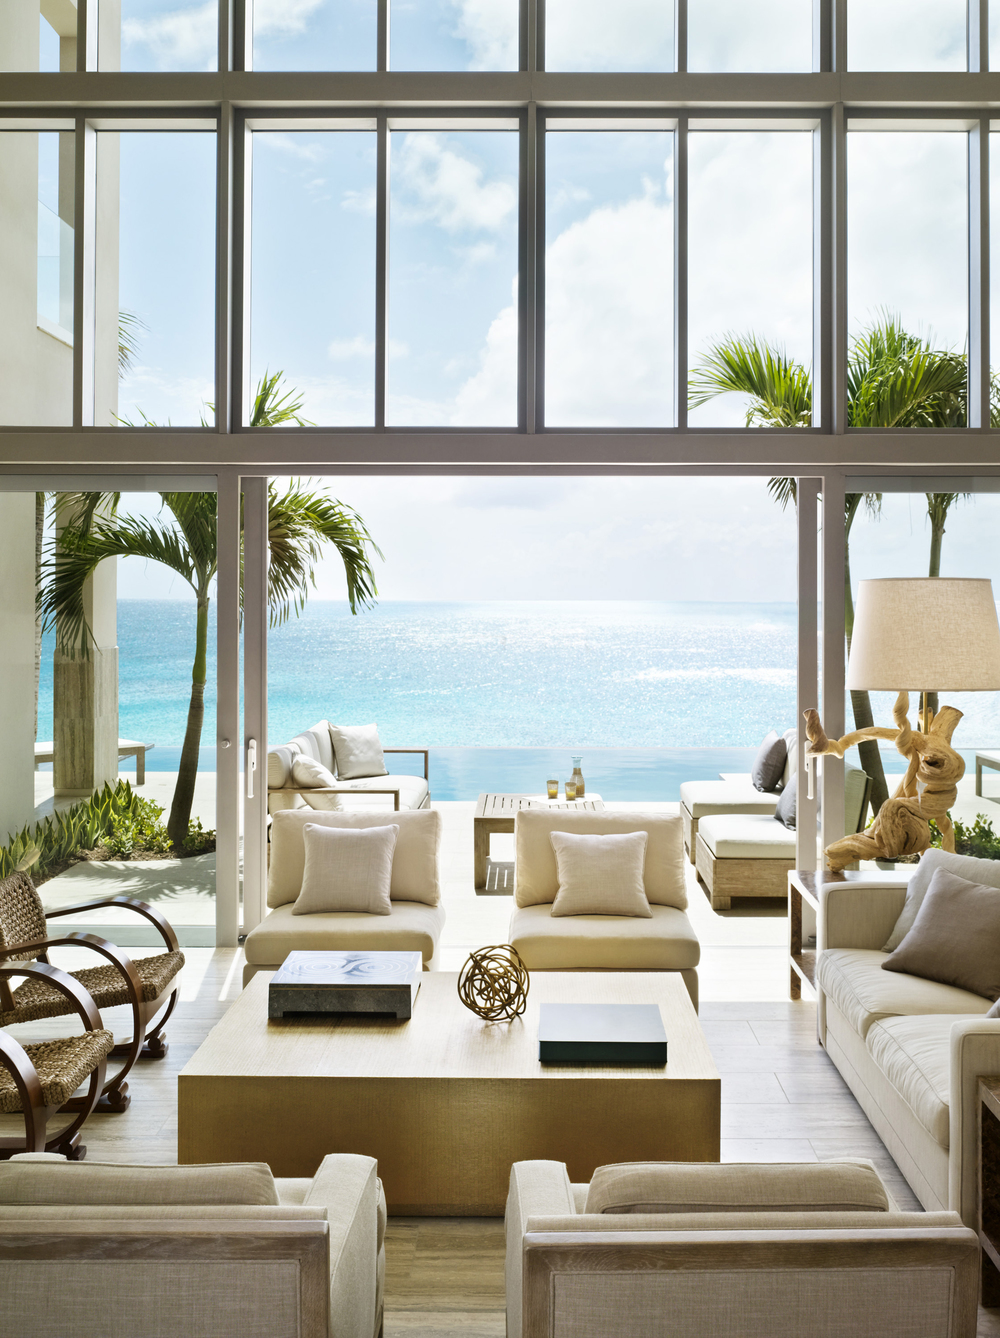 This $10 Million Villa at Four Seasons Anguilla Is Our Dream Caribbean Escape